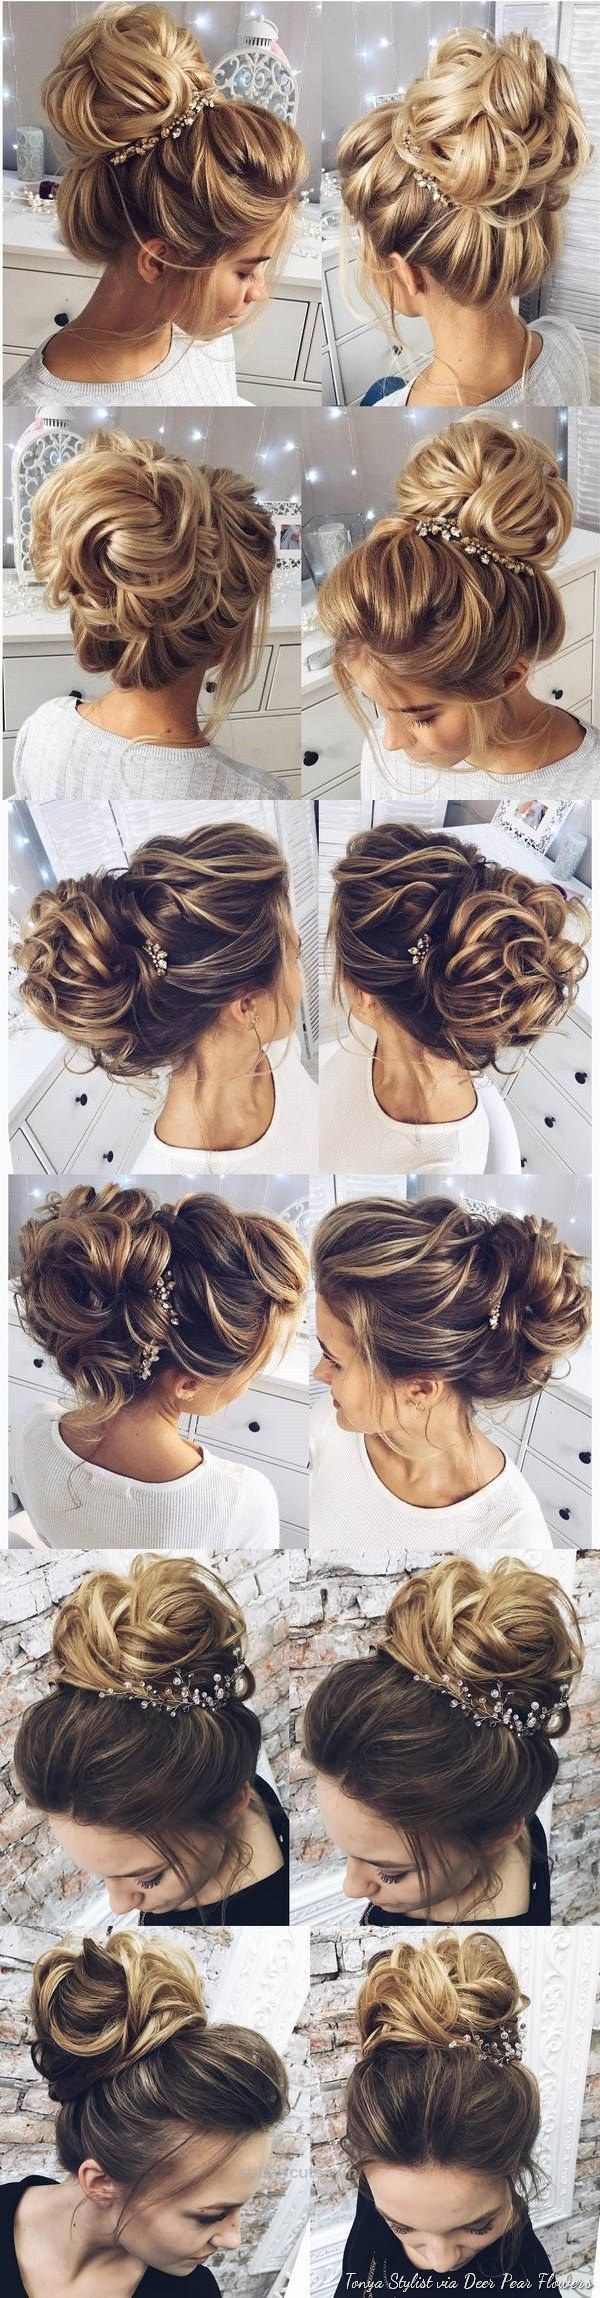 Magnificent Wedding Hairstyles for Long Hair from Tonyastylist / www.deerpearlflow…  The post  Wedding Hairstyles for Long Hair from Tonyastylist / www.deerpearlflow……  appeared ..